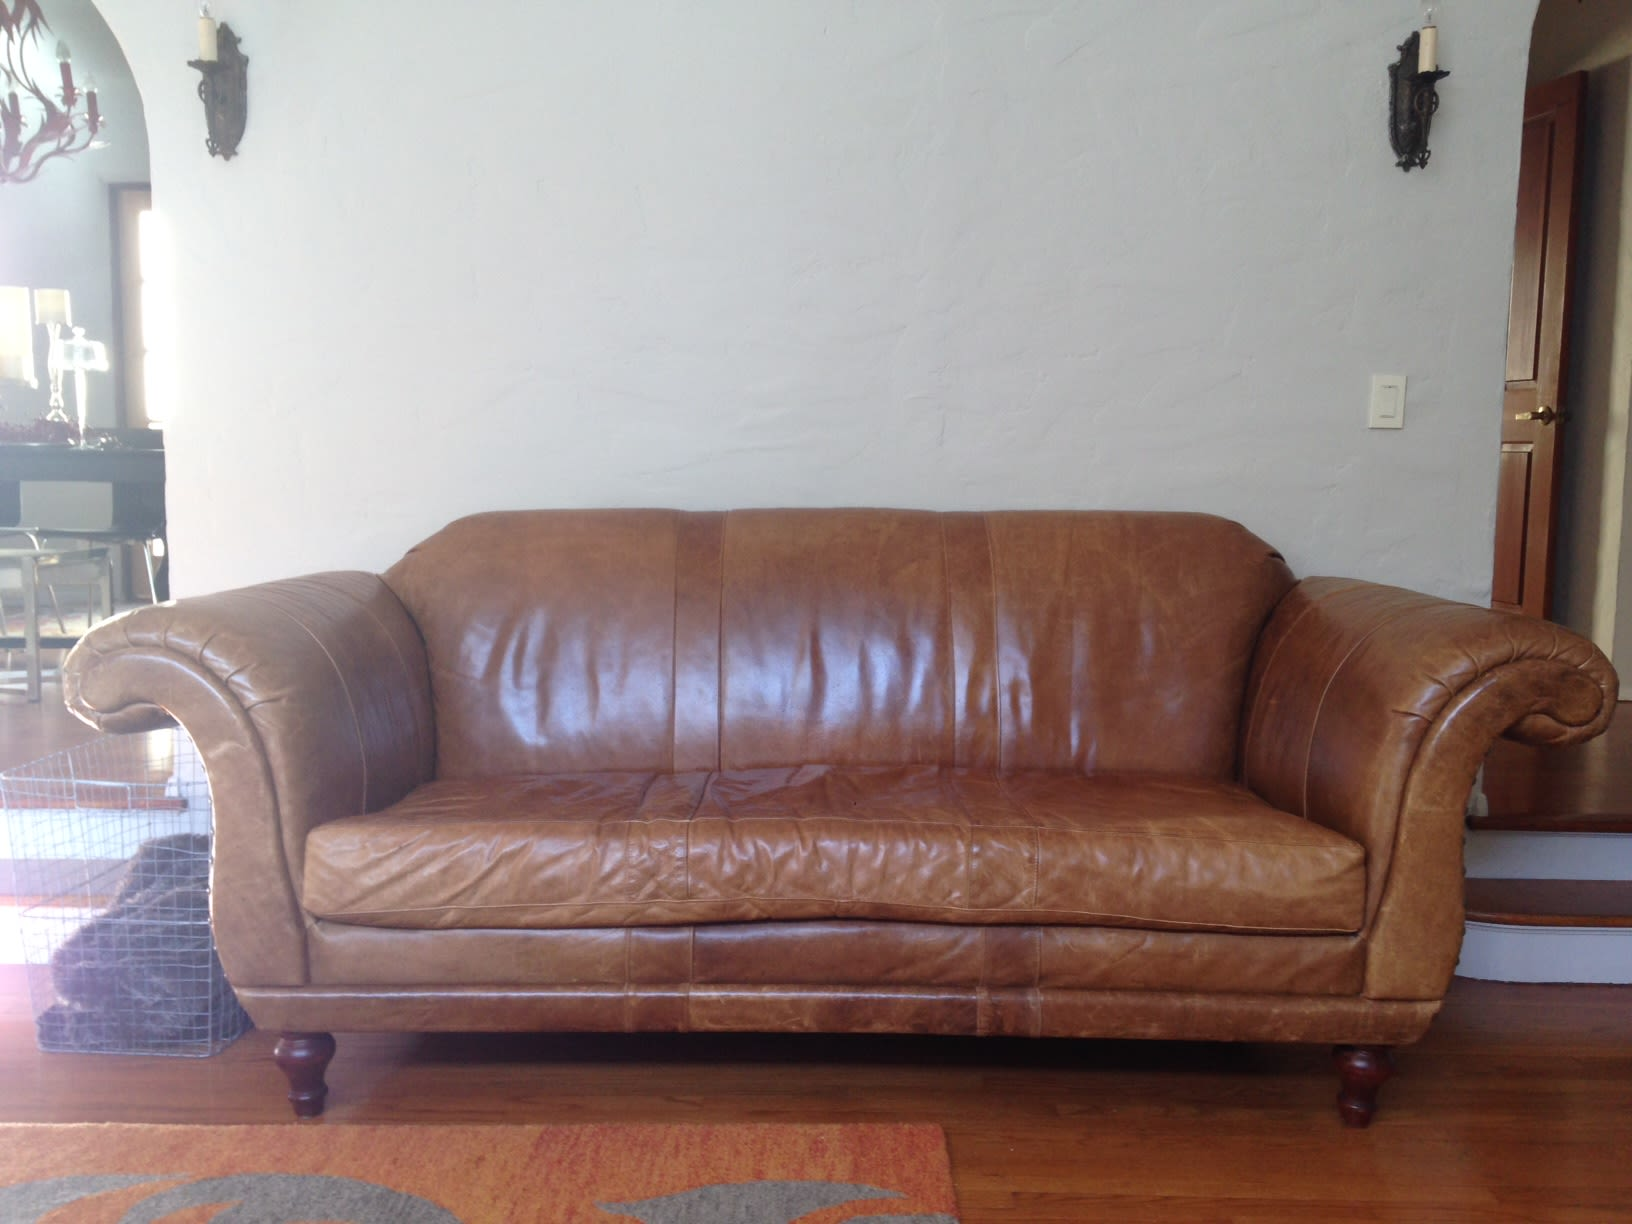 Astounding Anthropologie Leather Cotswold Couch Creativecarmelina Interior Chair Design Creativecarmelinacom